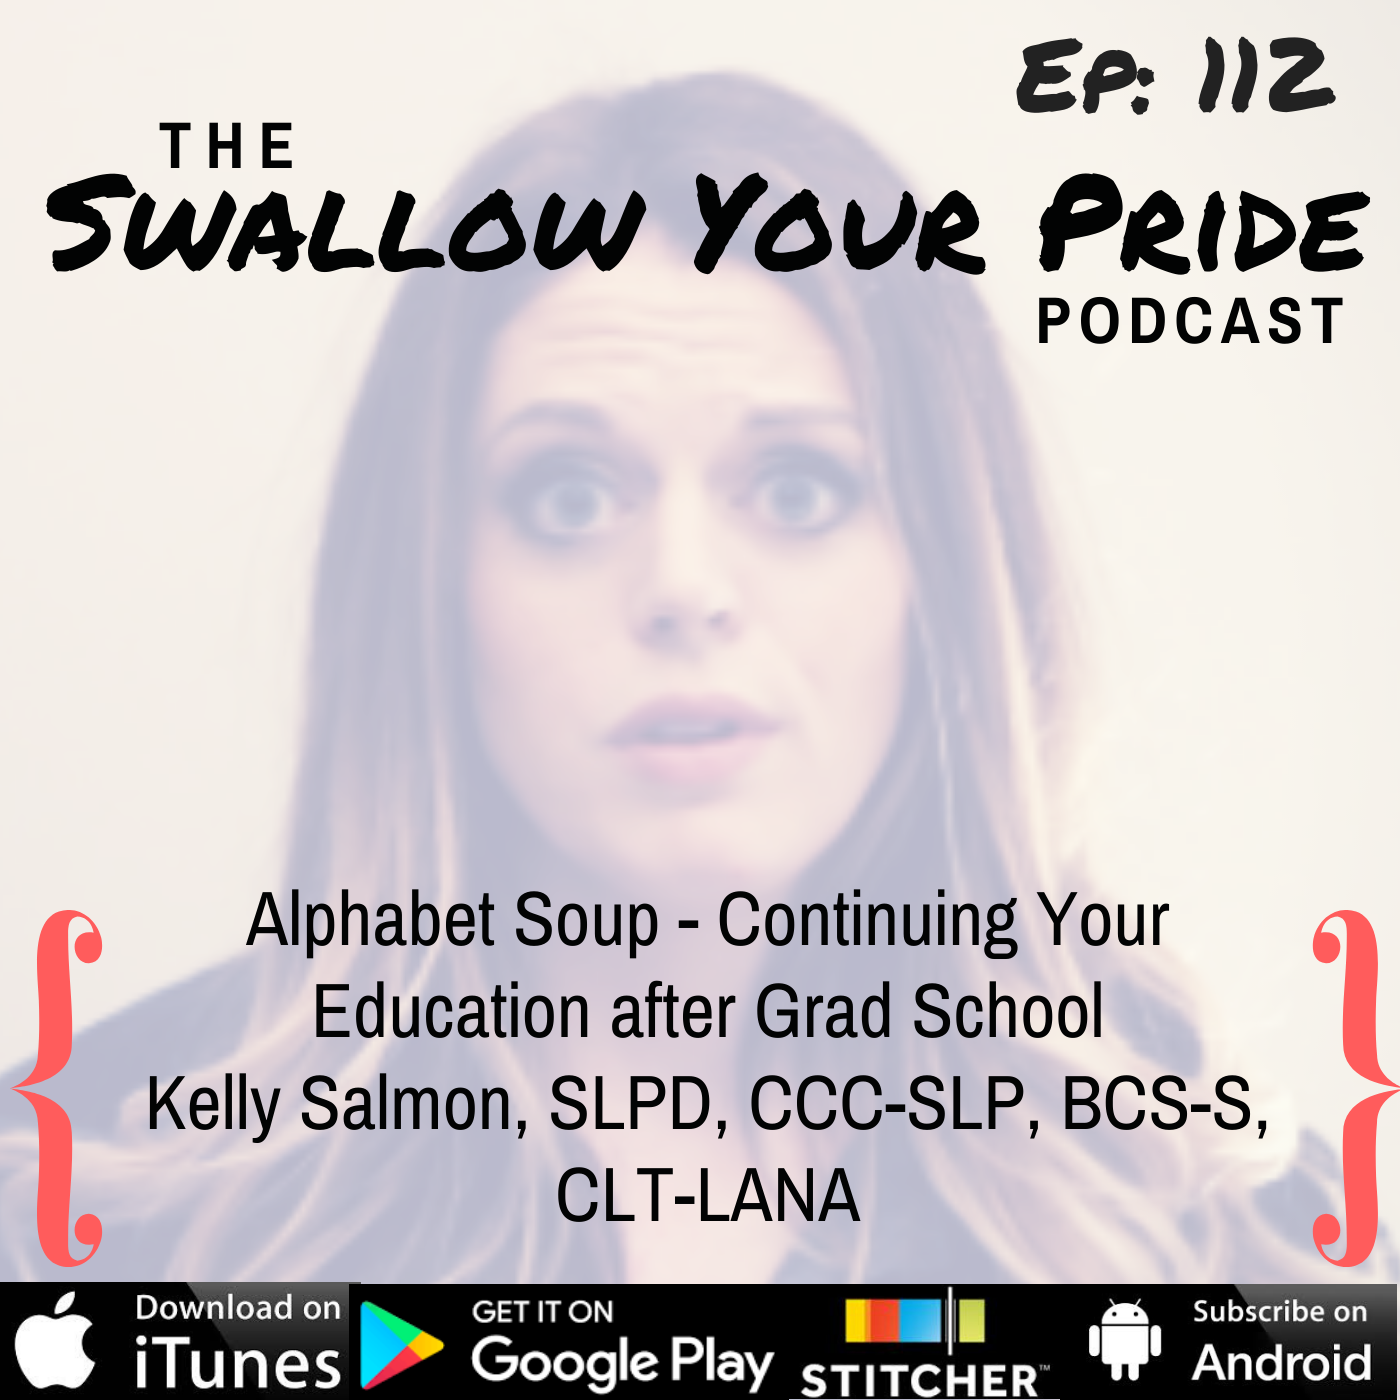 112 – Kelly Salmon, SLPD, CCC-SLP, BCS-S, CLT-LANA – Alphabet Soup – Continuing Your Education after Grad School